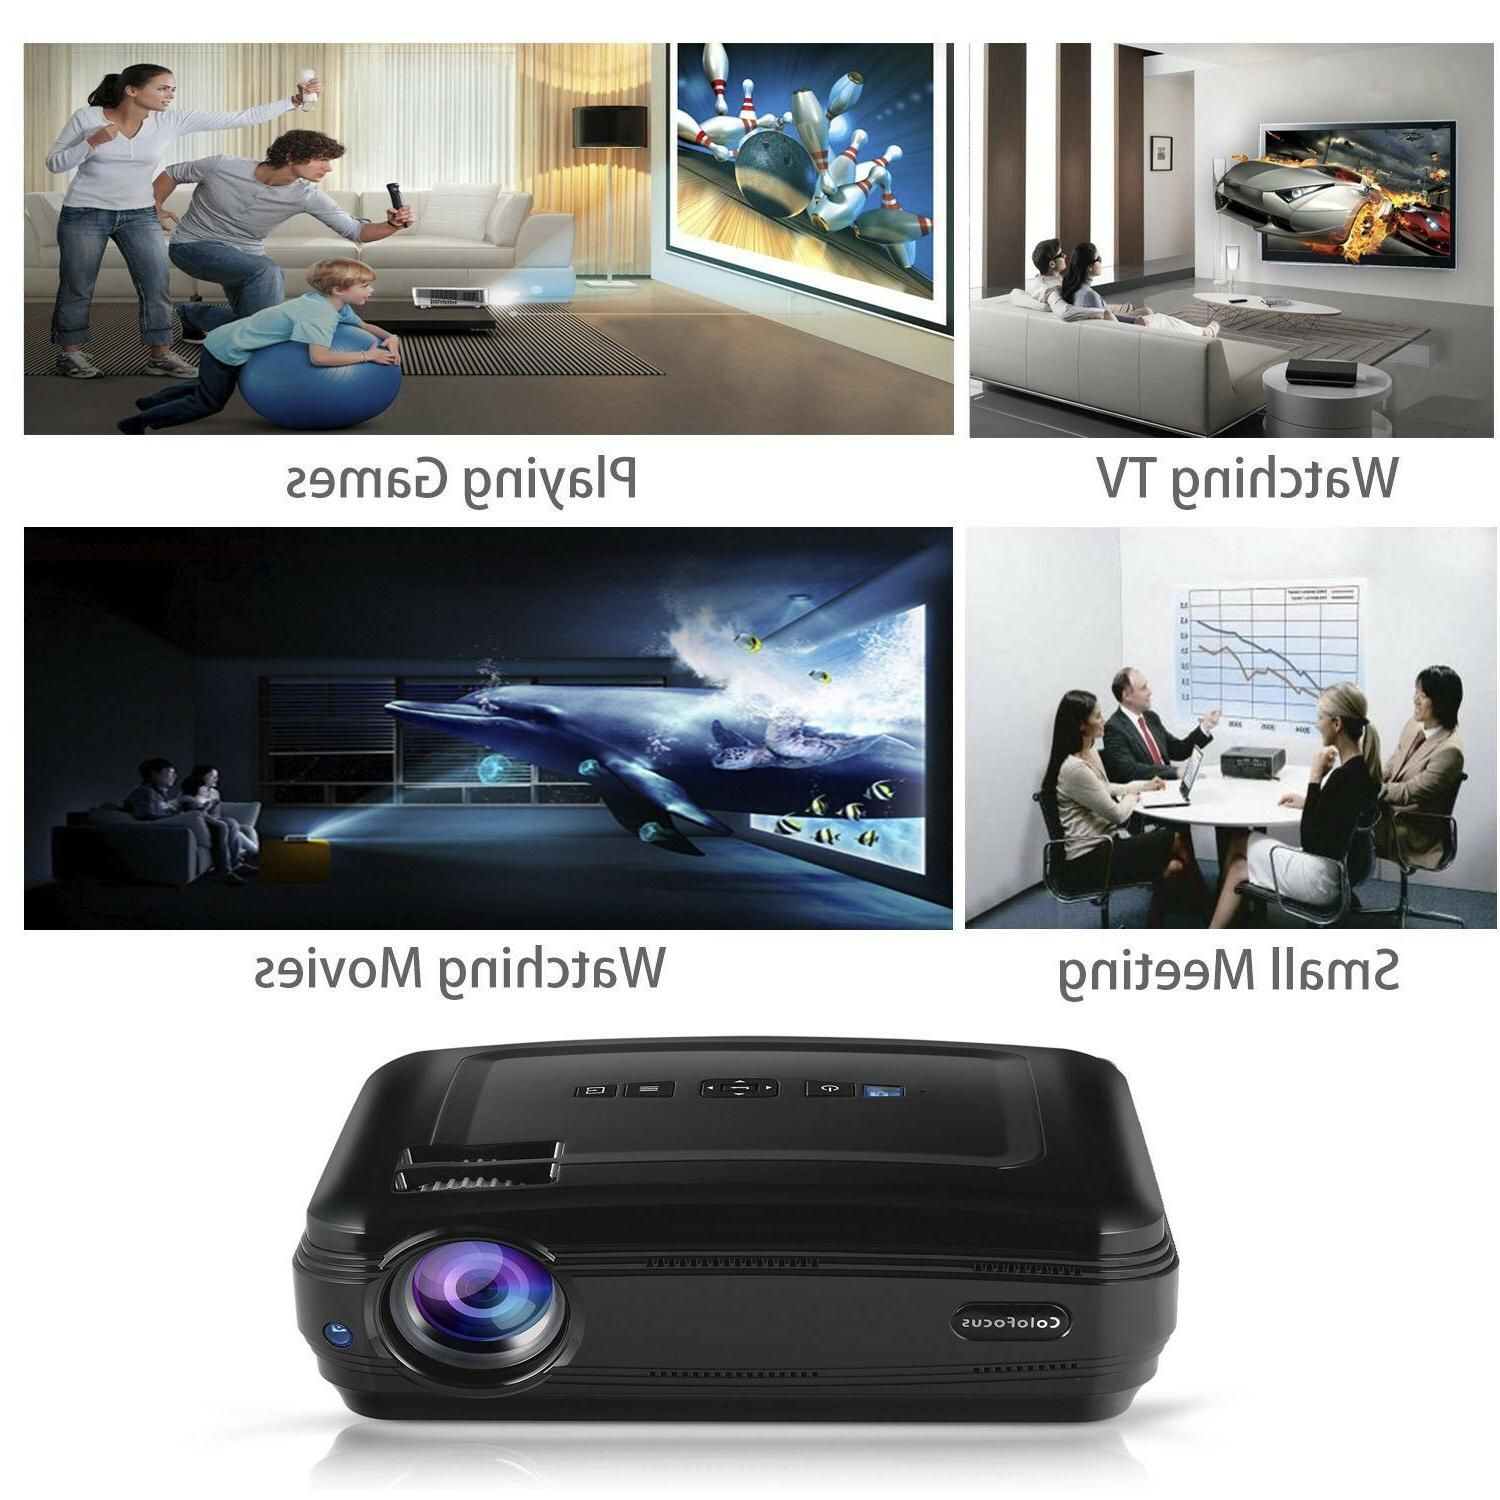 FHD Home Portable Display Video Projector Game TV Movie